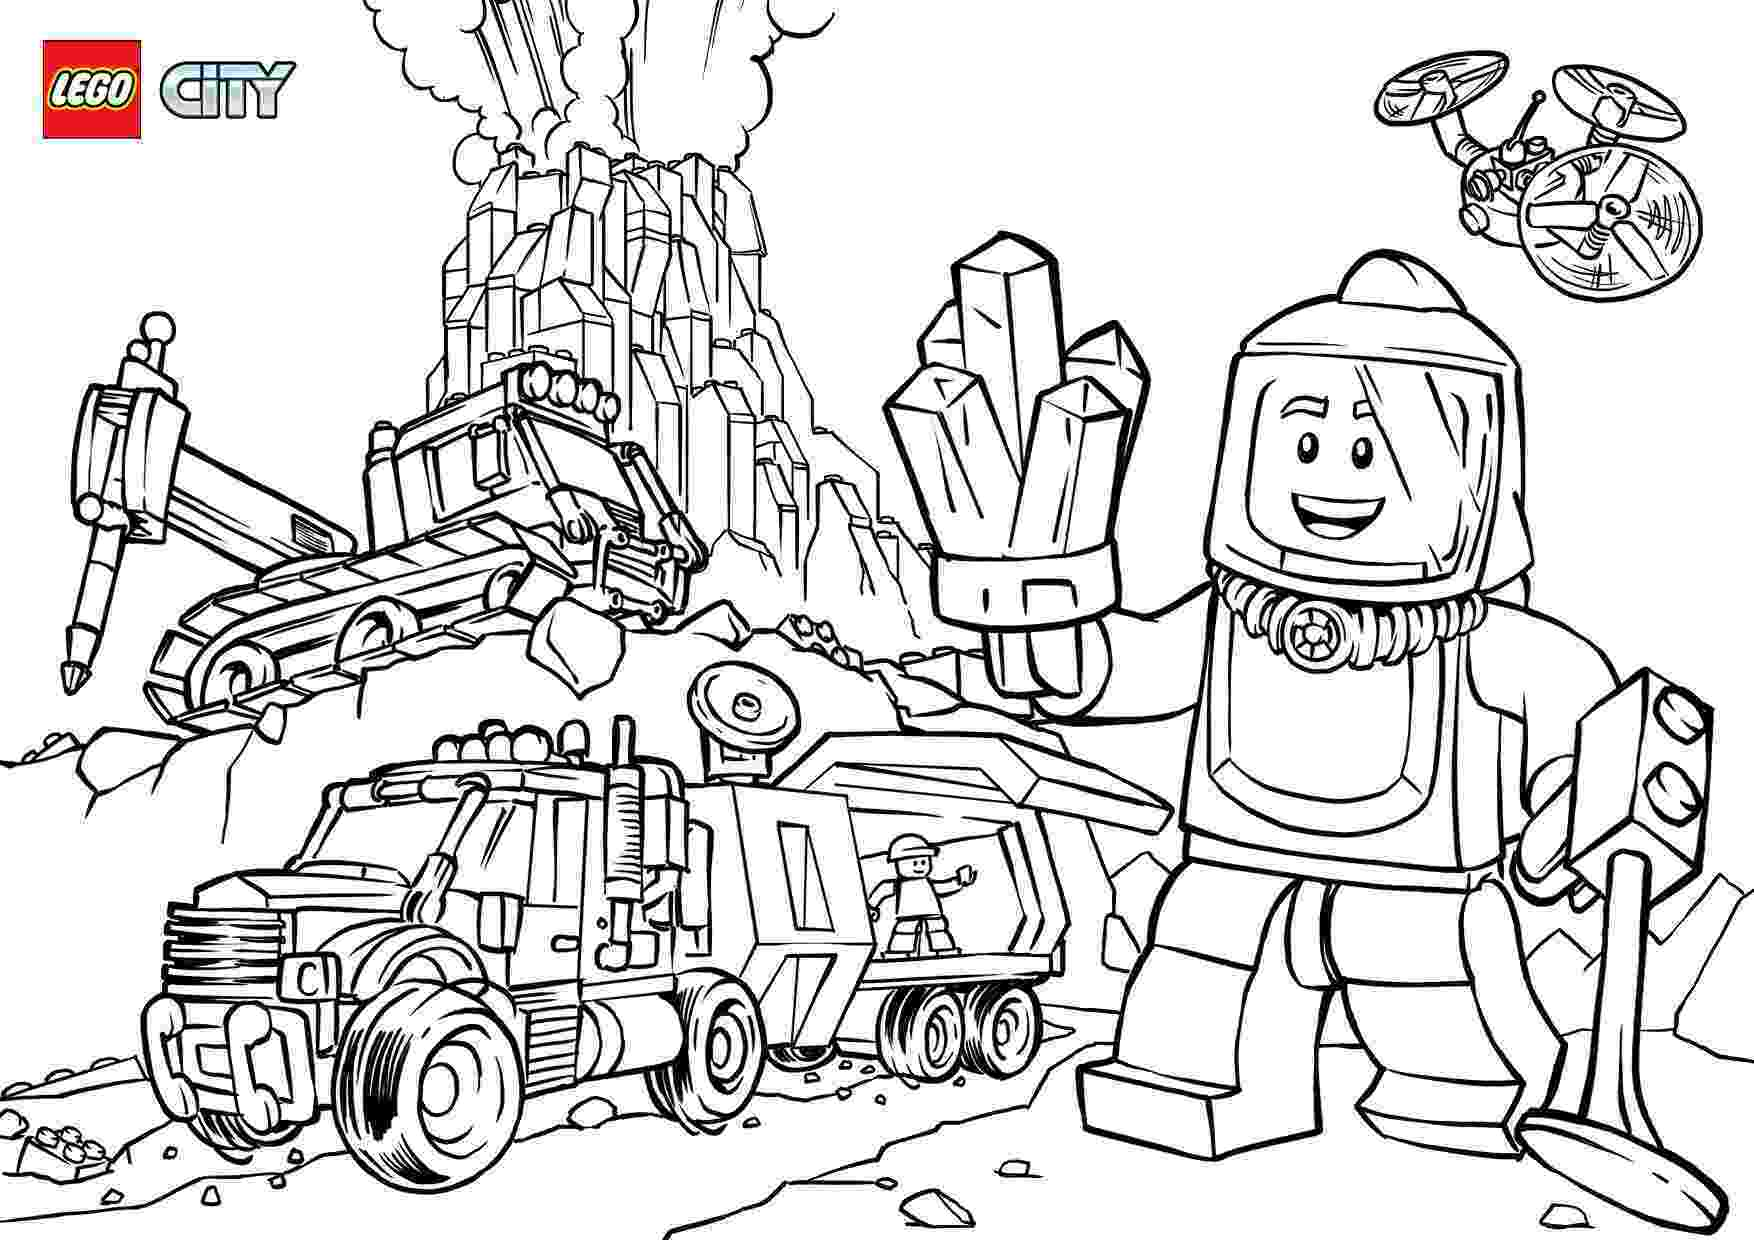 lego city coloring page lego city coloring pages to download and print for free lego page coloring city